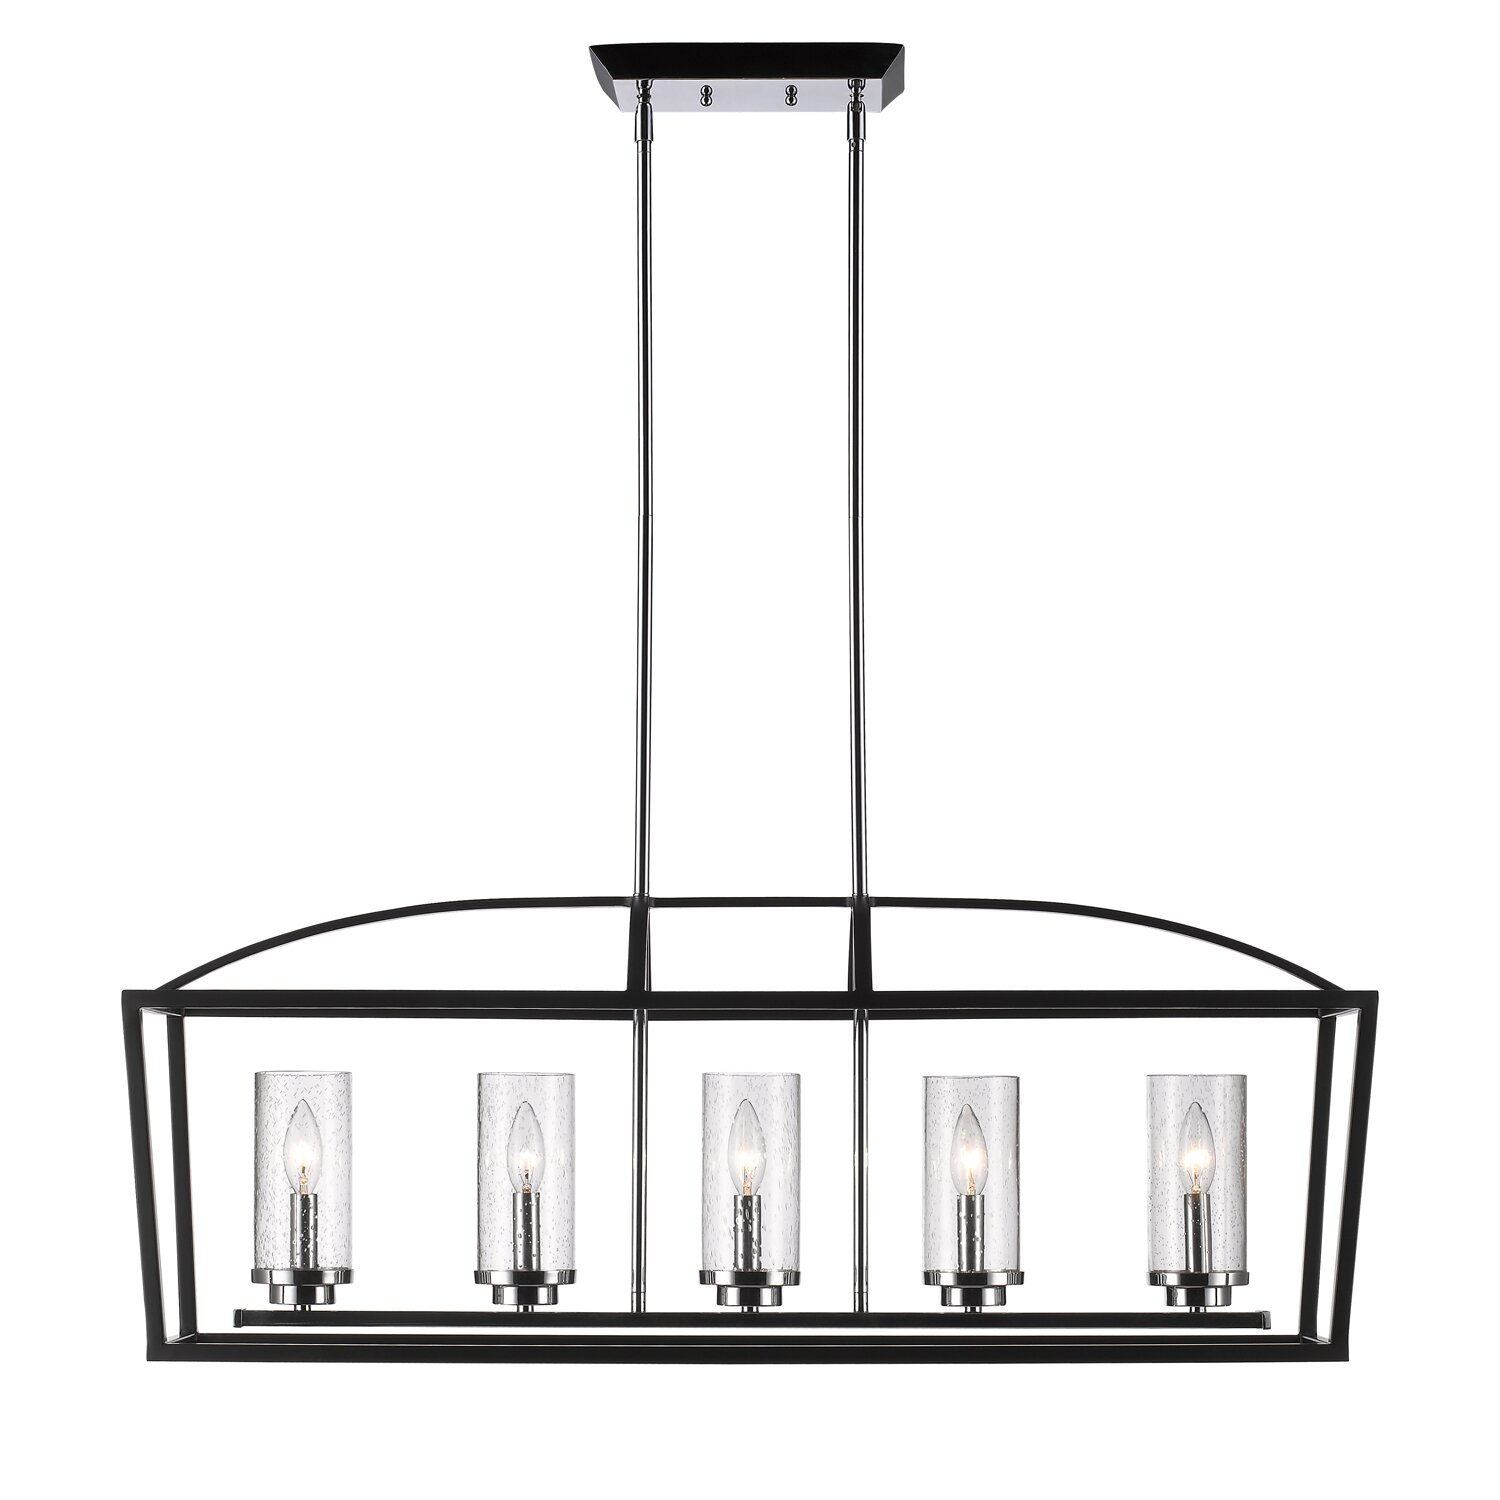 Red barrel studio barrera 5 light kitchen island pendant for Kitchen island lighting pendants